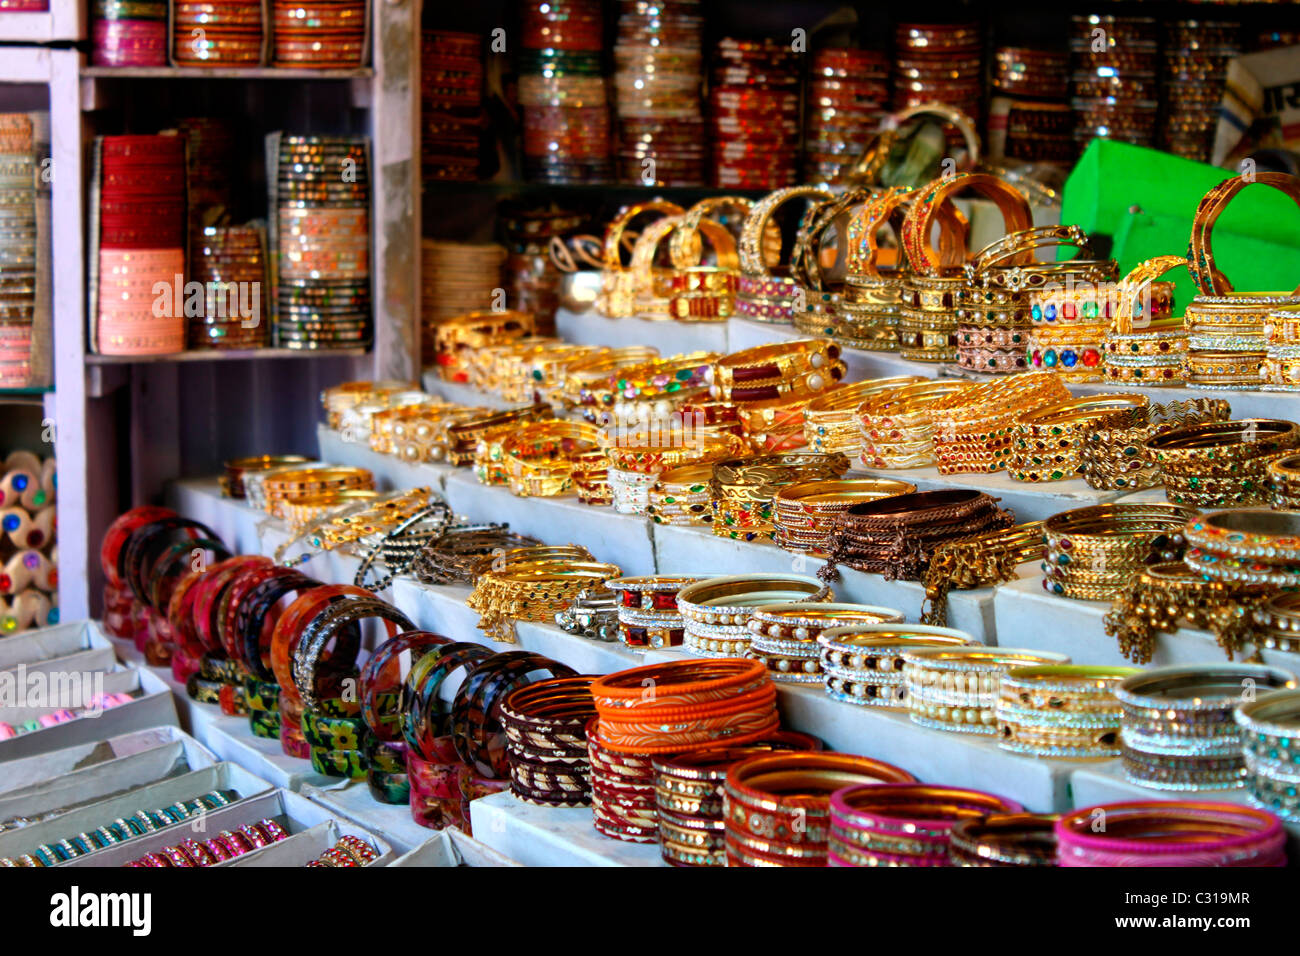 bangles photos jaipur bangle shop bazaar images in india rajasthan stock johari variety photo alamy